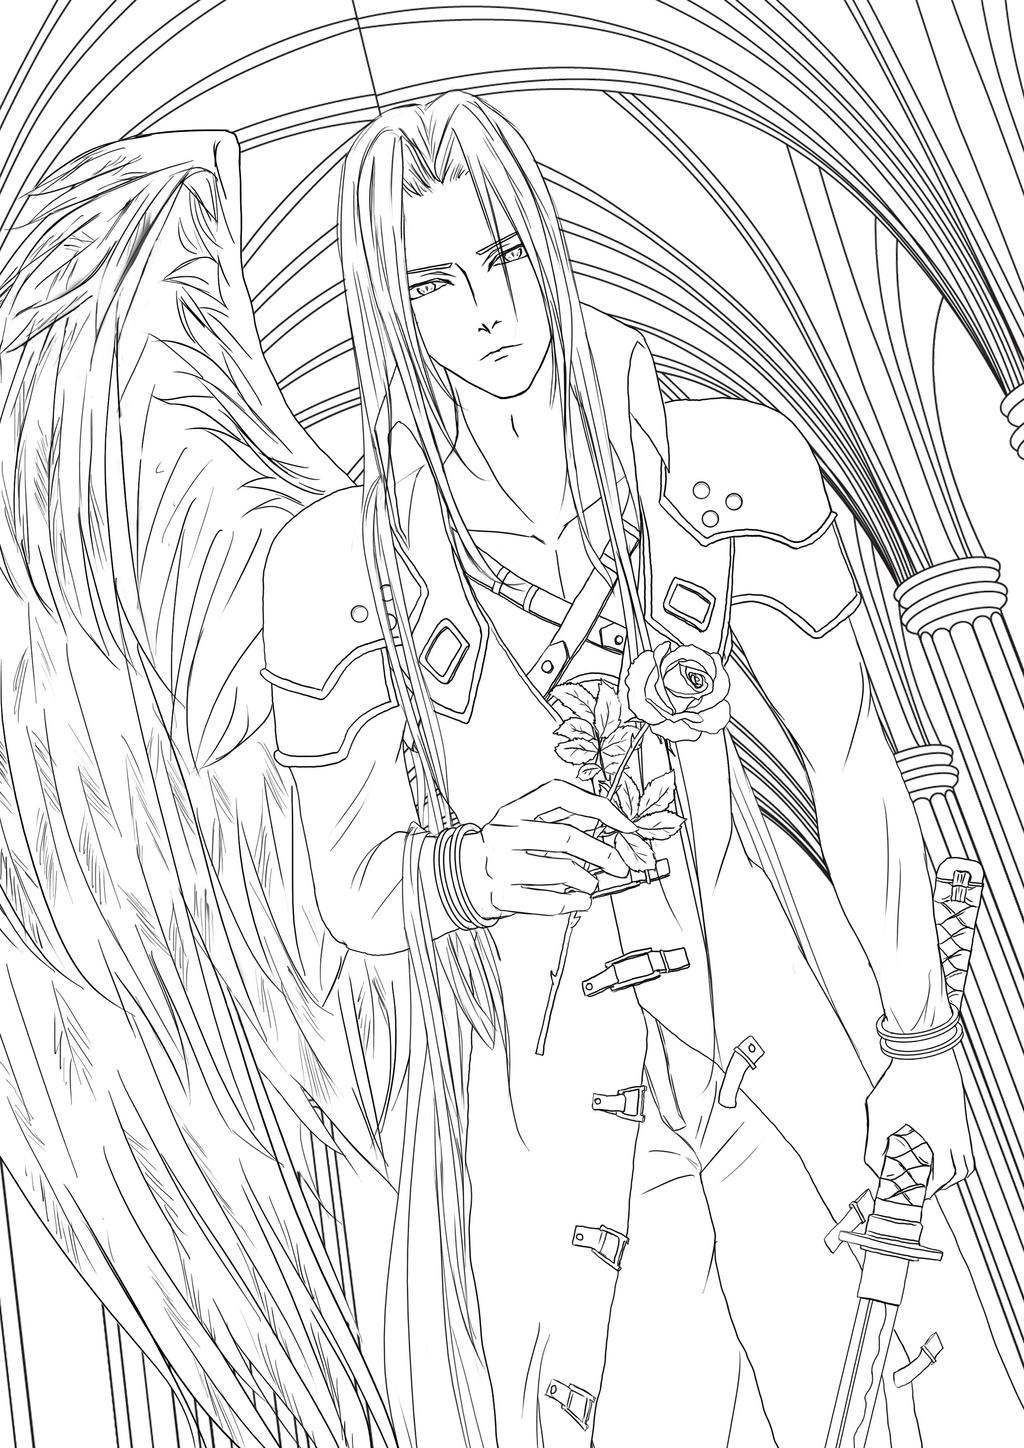 Sephiroth lineart by katsuyamotto on deviantart for Final fantasy coloring pages